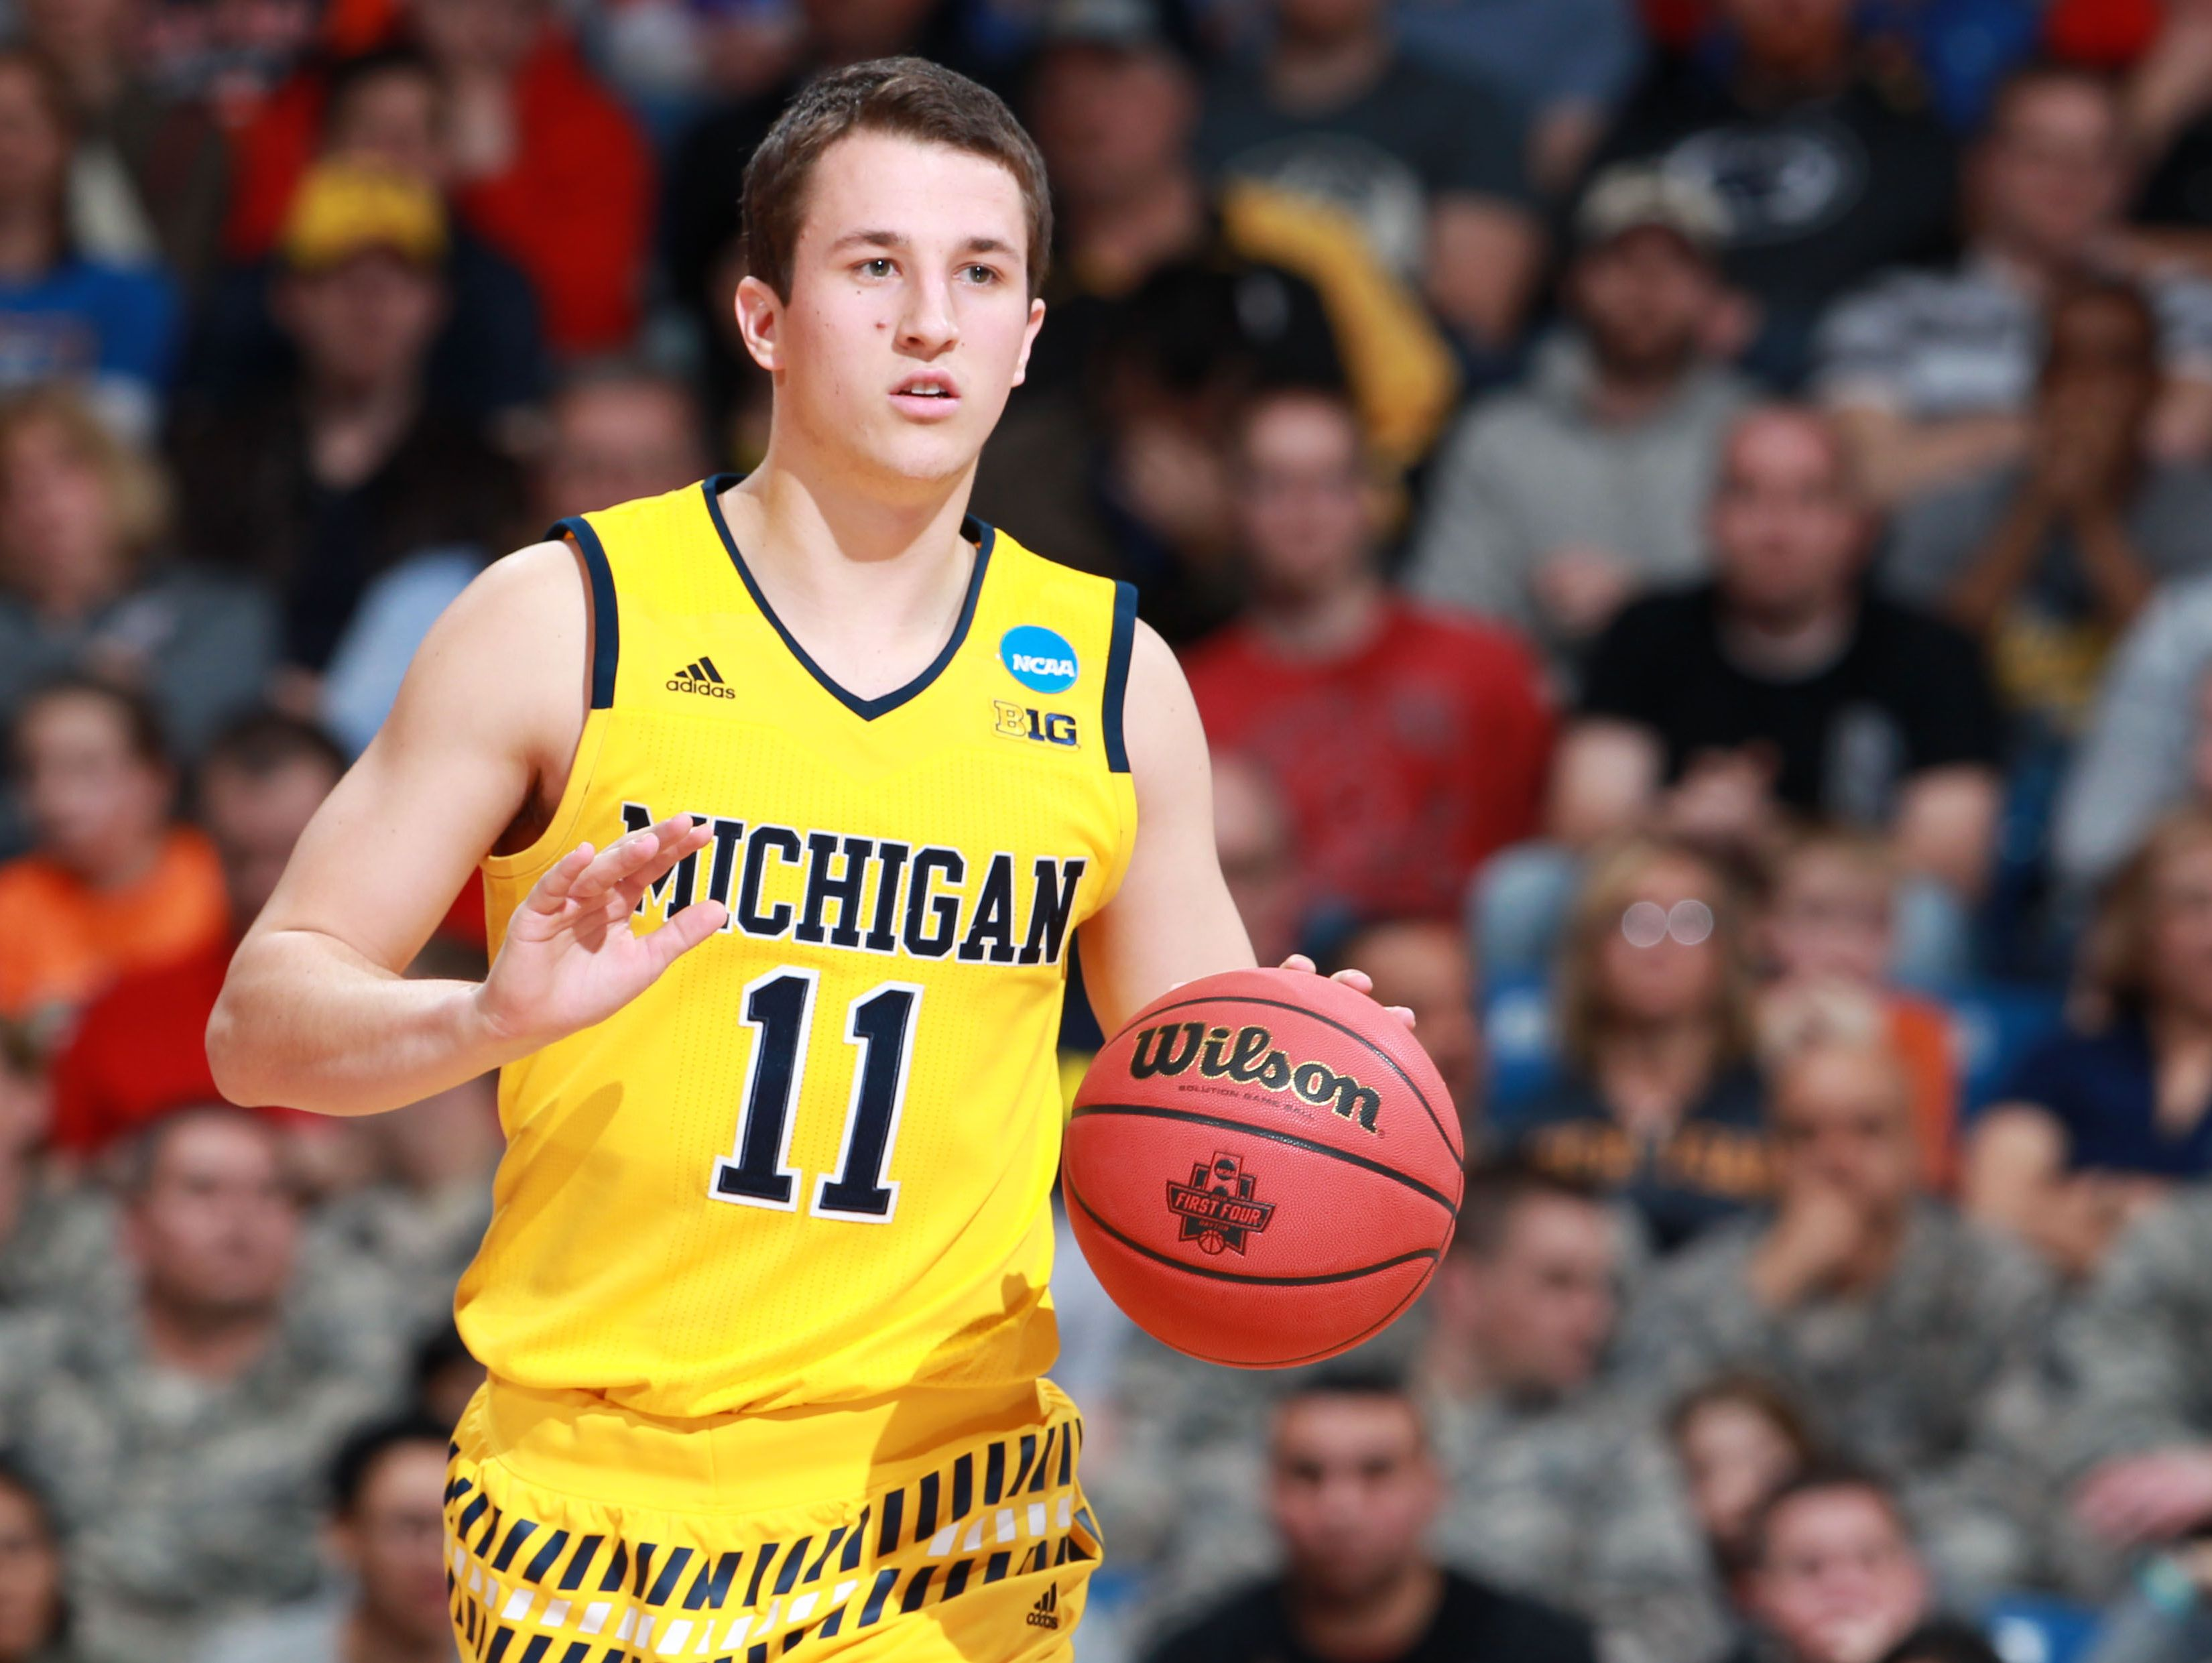 Michigan Wolverines guard Andrew Dakich (11) brings the ball up court during the first half against the Tulsa Golden Hurricane in the First Four of the NCAA men's college basketball tournament at Dayton Arena.